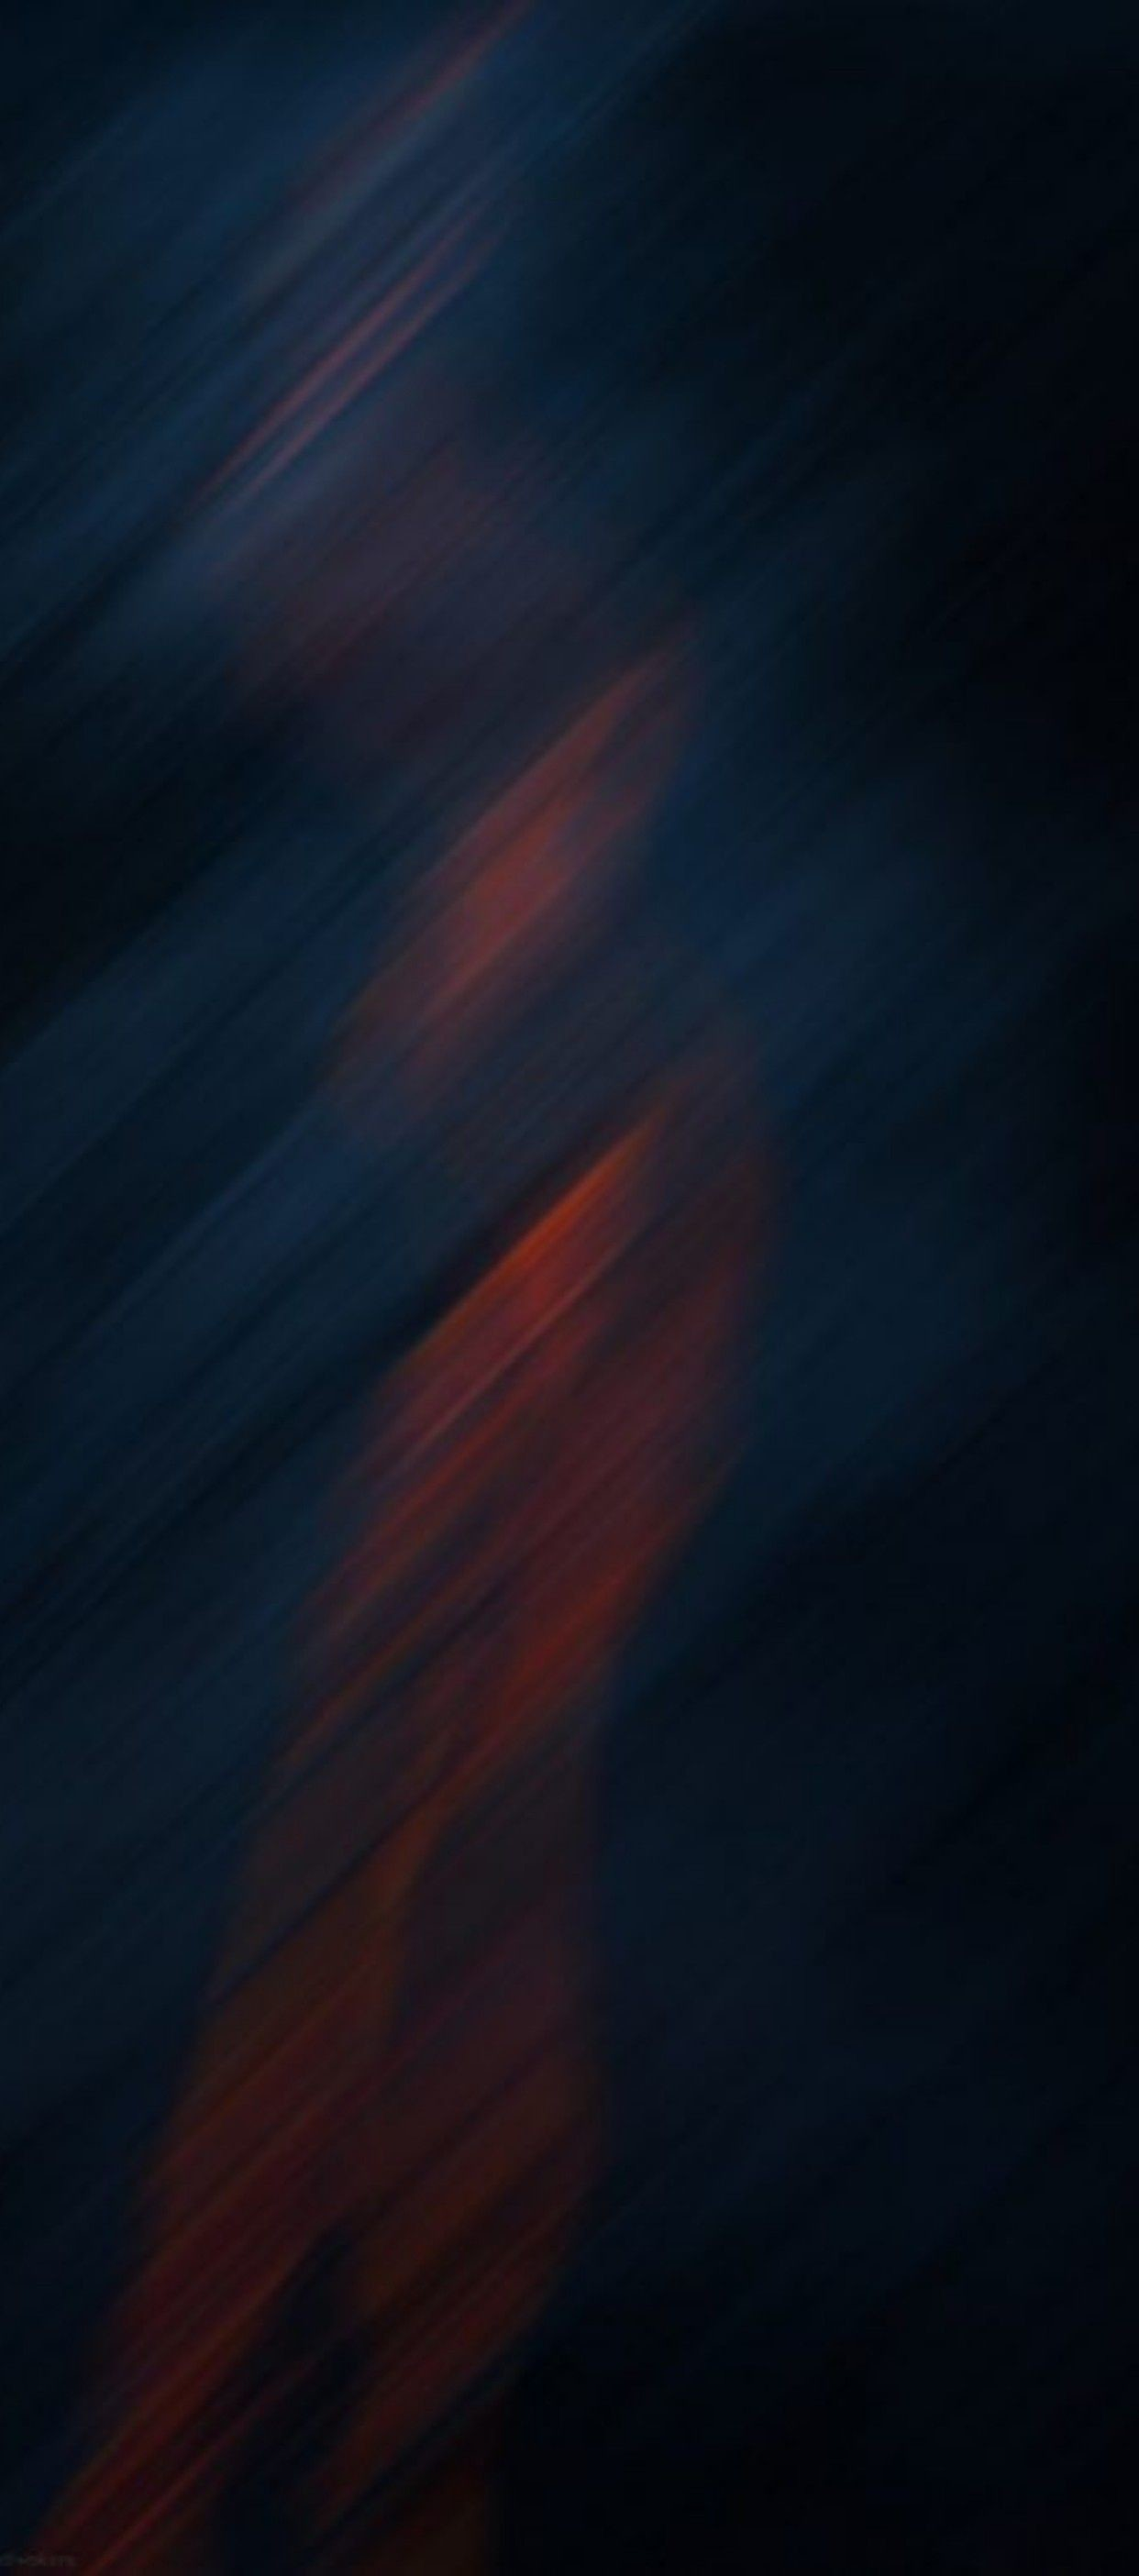 Res: 1242x2809, OS 11, iPhone X, abstract, black, orange, apple, wallpaper,